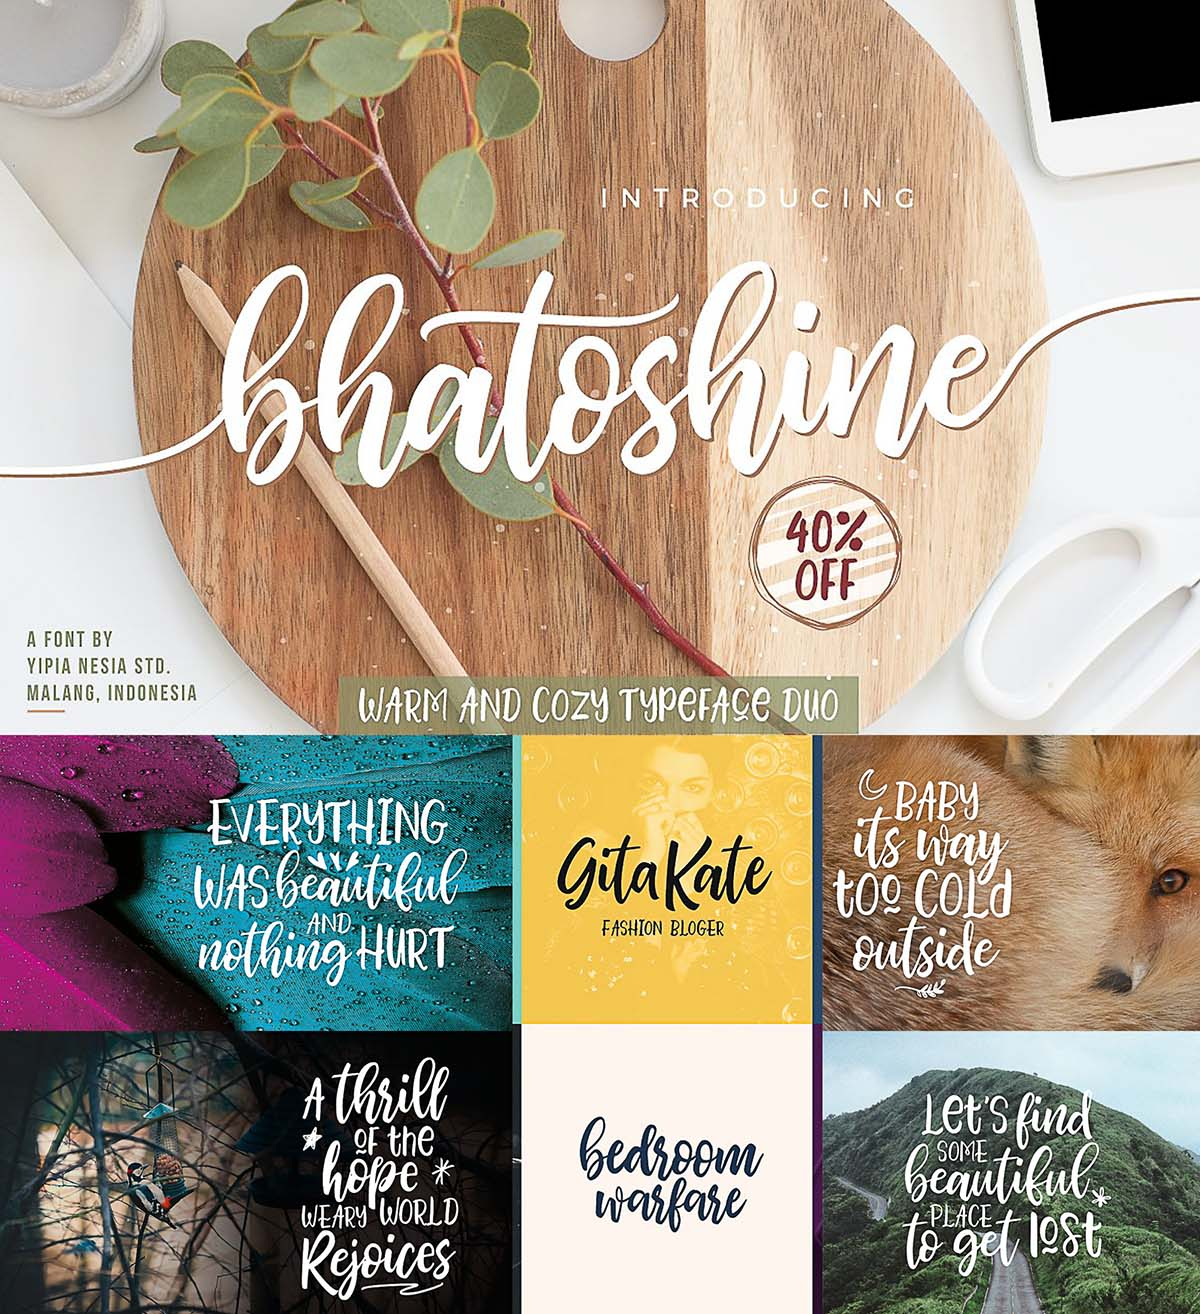 Bhatoshine calligraphy fonts